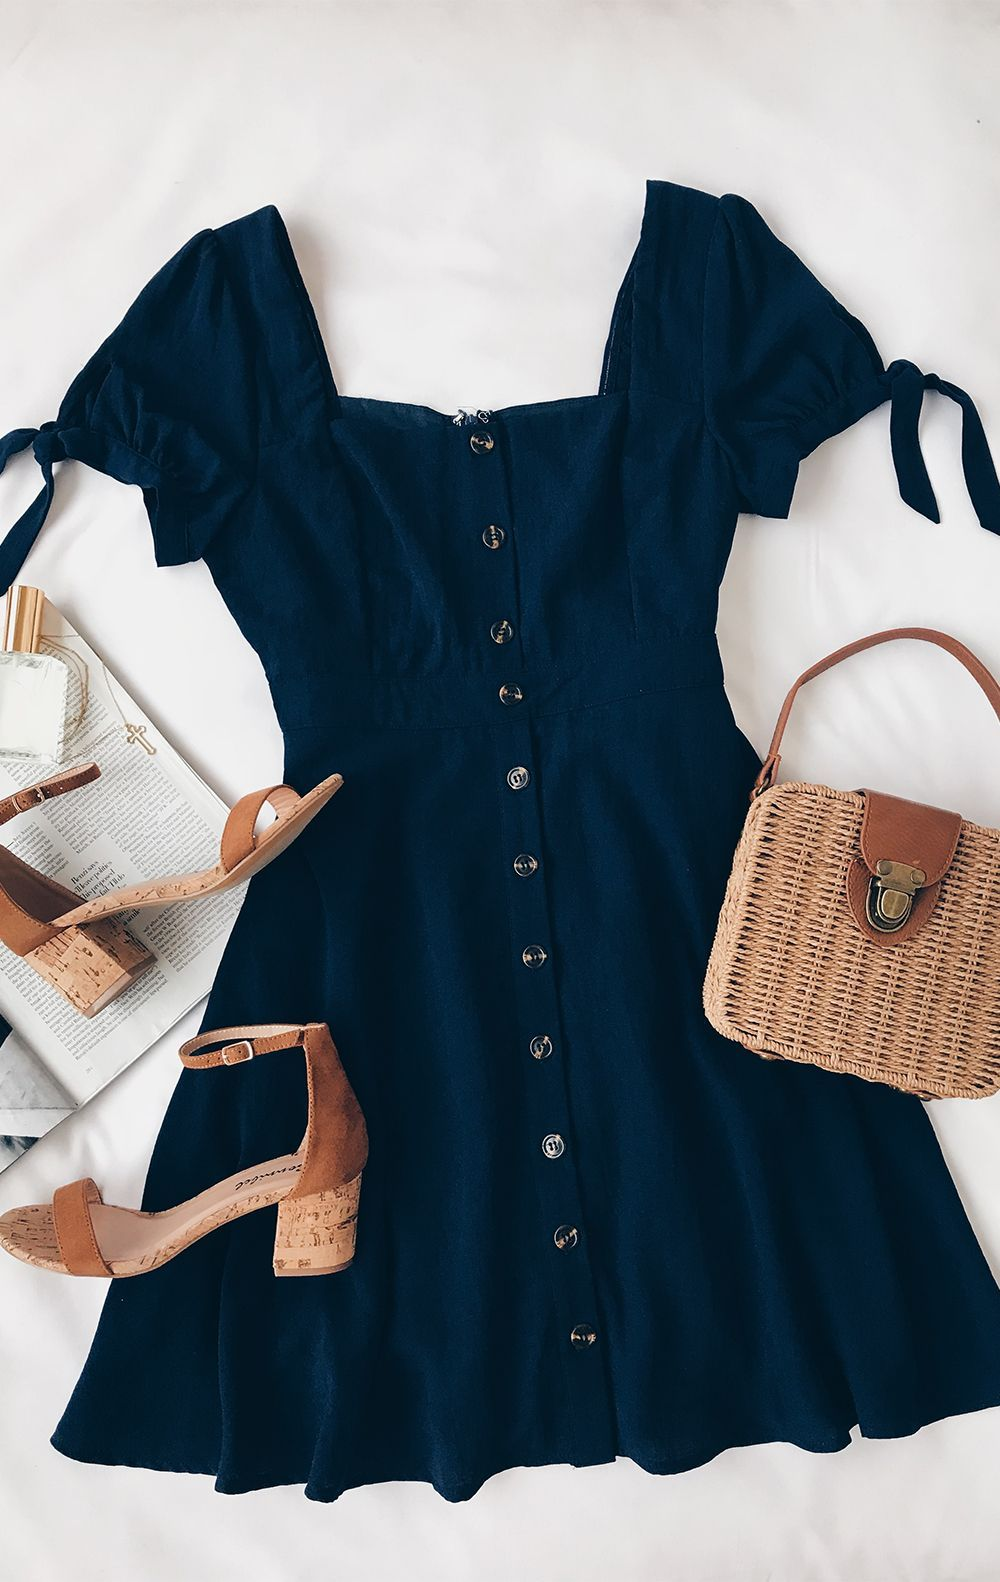 64+ Charming Spring Work Outfits To Wear To The Office is part of Dresses - Find and save ideas about spring style on Women Outfits    See more ideas about Outfit Trends 2019, Fashion clothes and looks